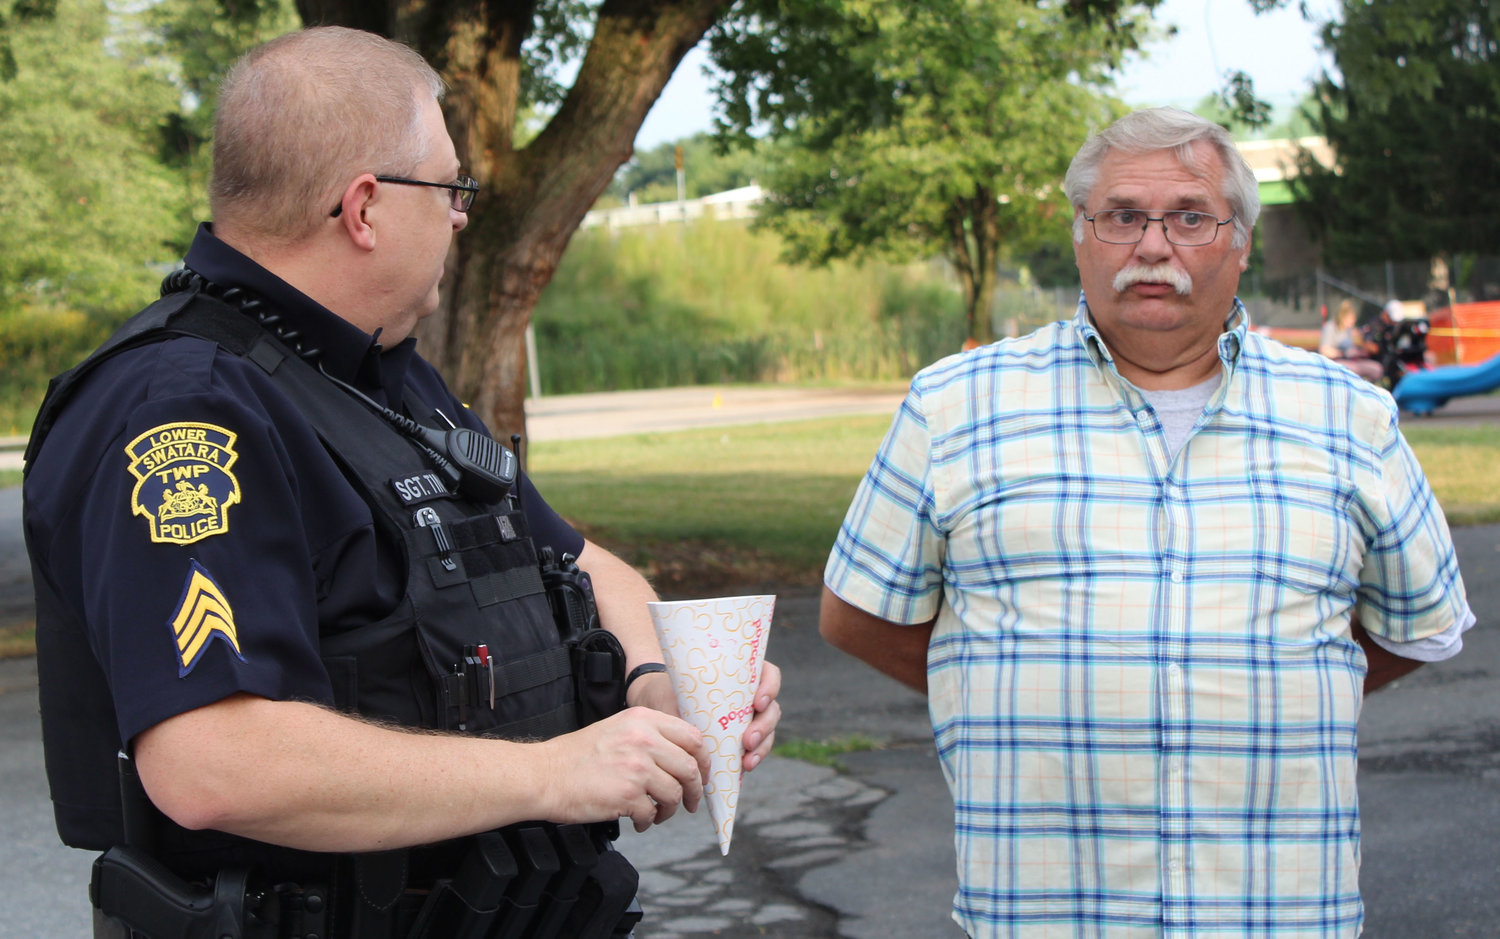 Sgt. Dan Tingle talks with Curt Zeiders during National Night Out in Lower Swatara on Aug. 6.